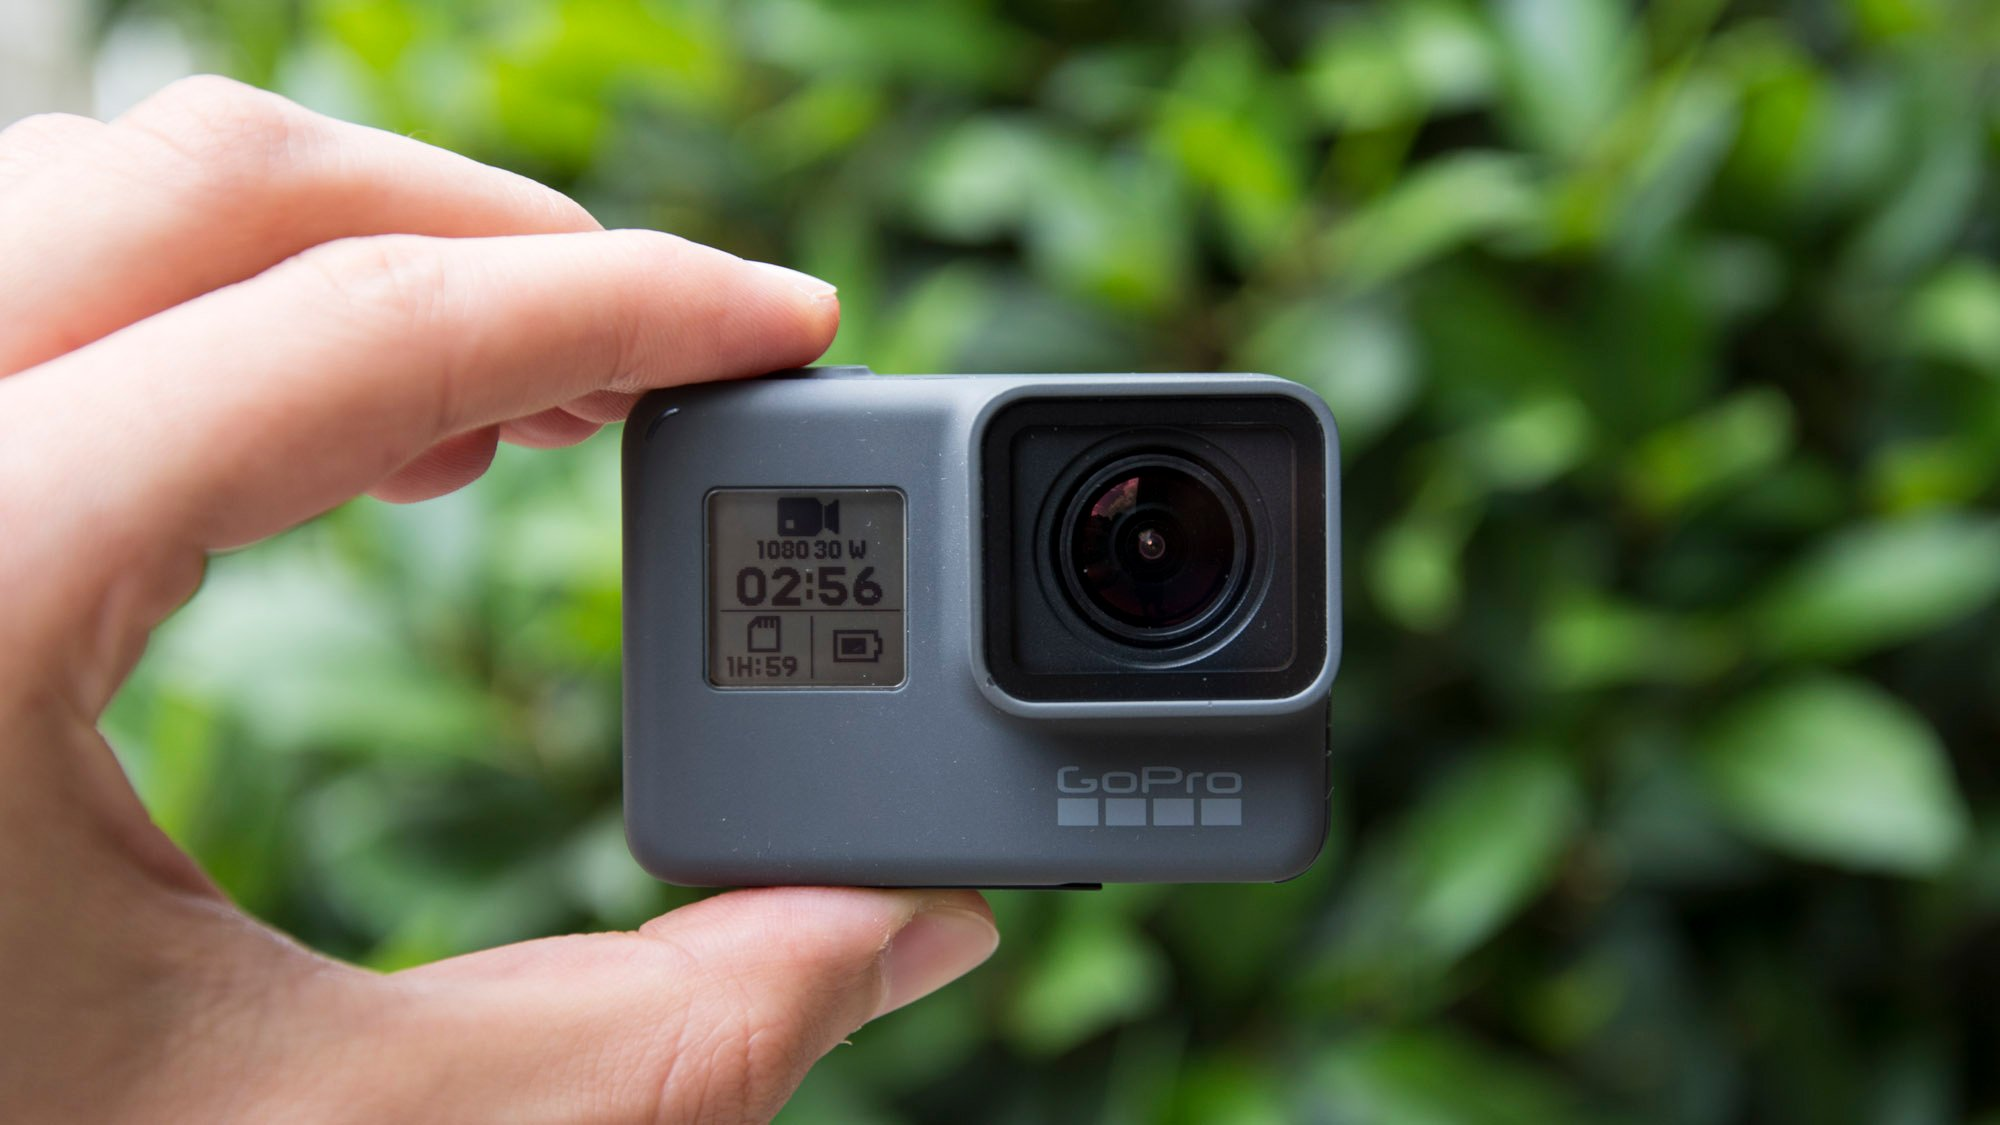 GoPro Hero (2018) review: A go-anywhere action camera that sticks to the basics | Expert Reviews